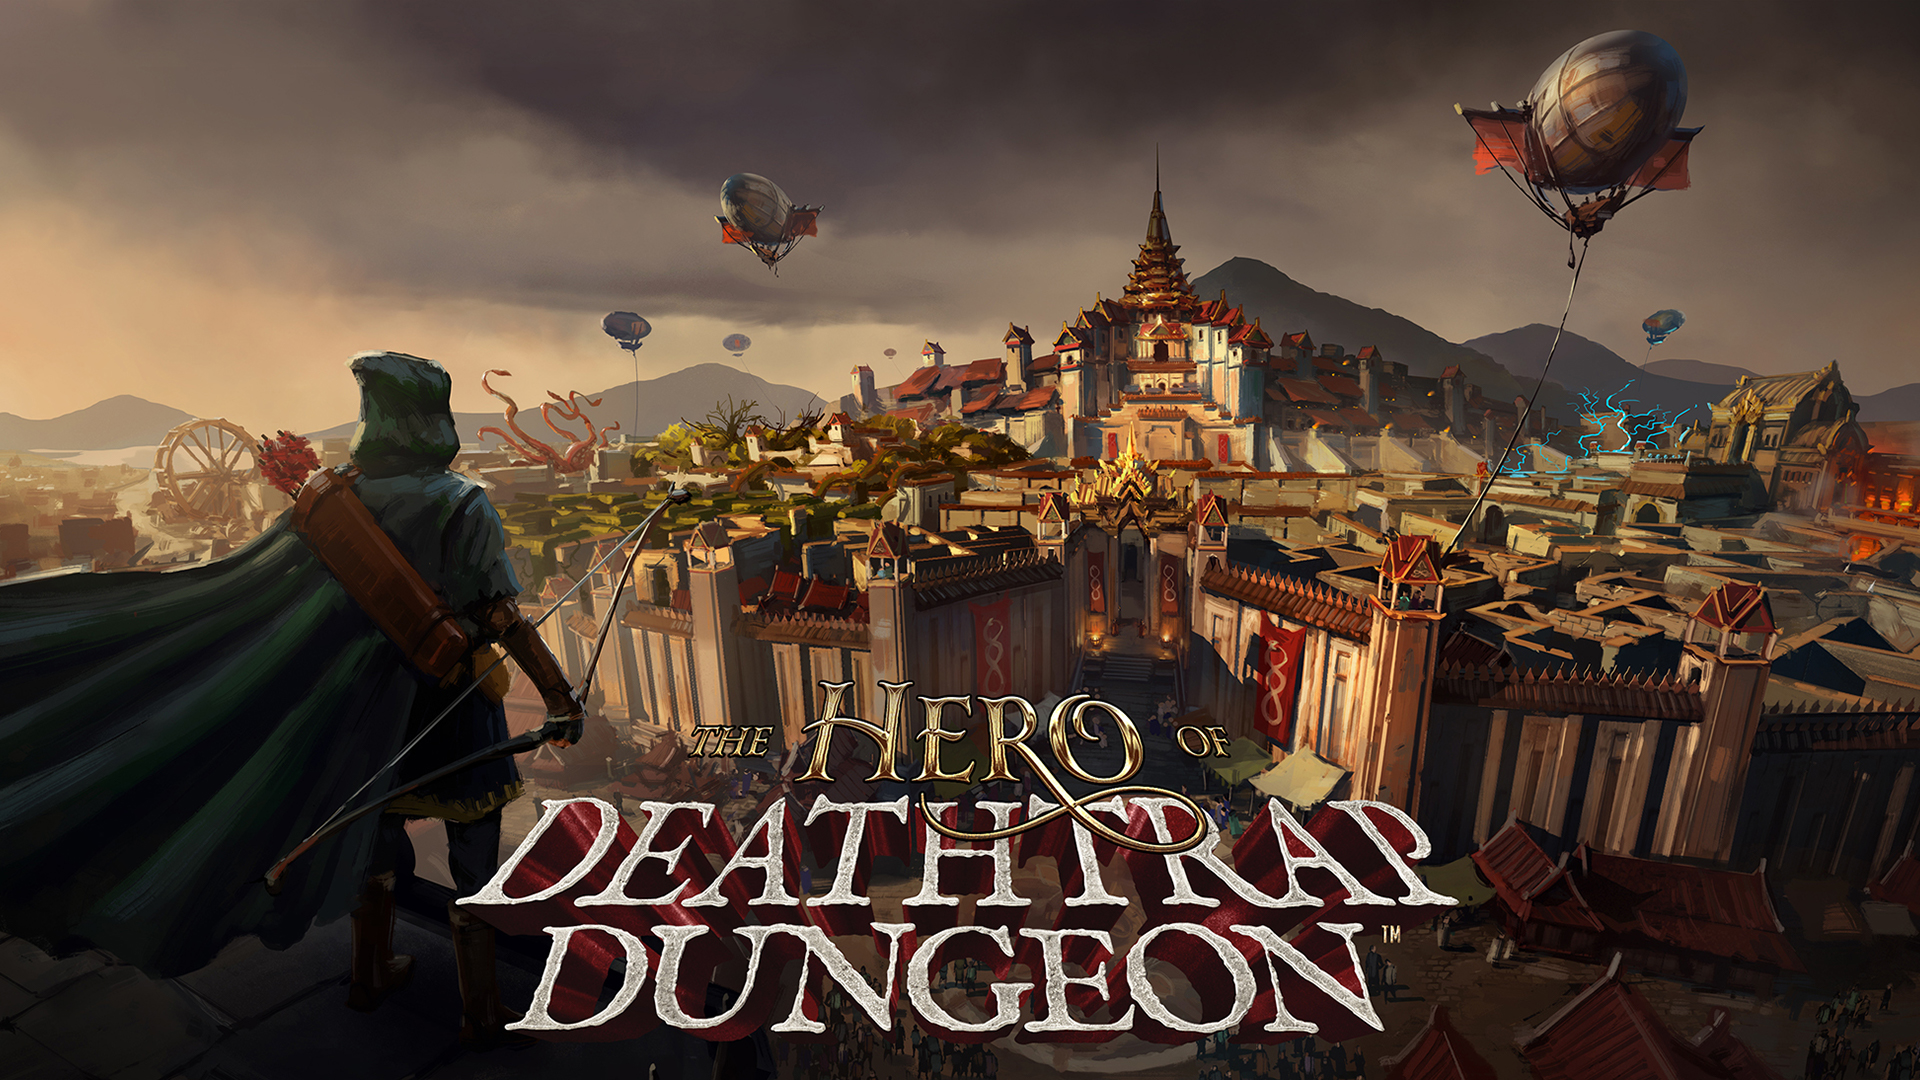 The Hero of Deathtrap Dungeon